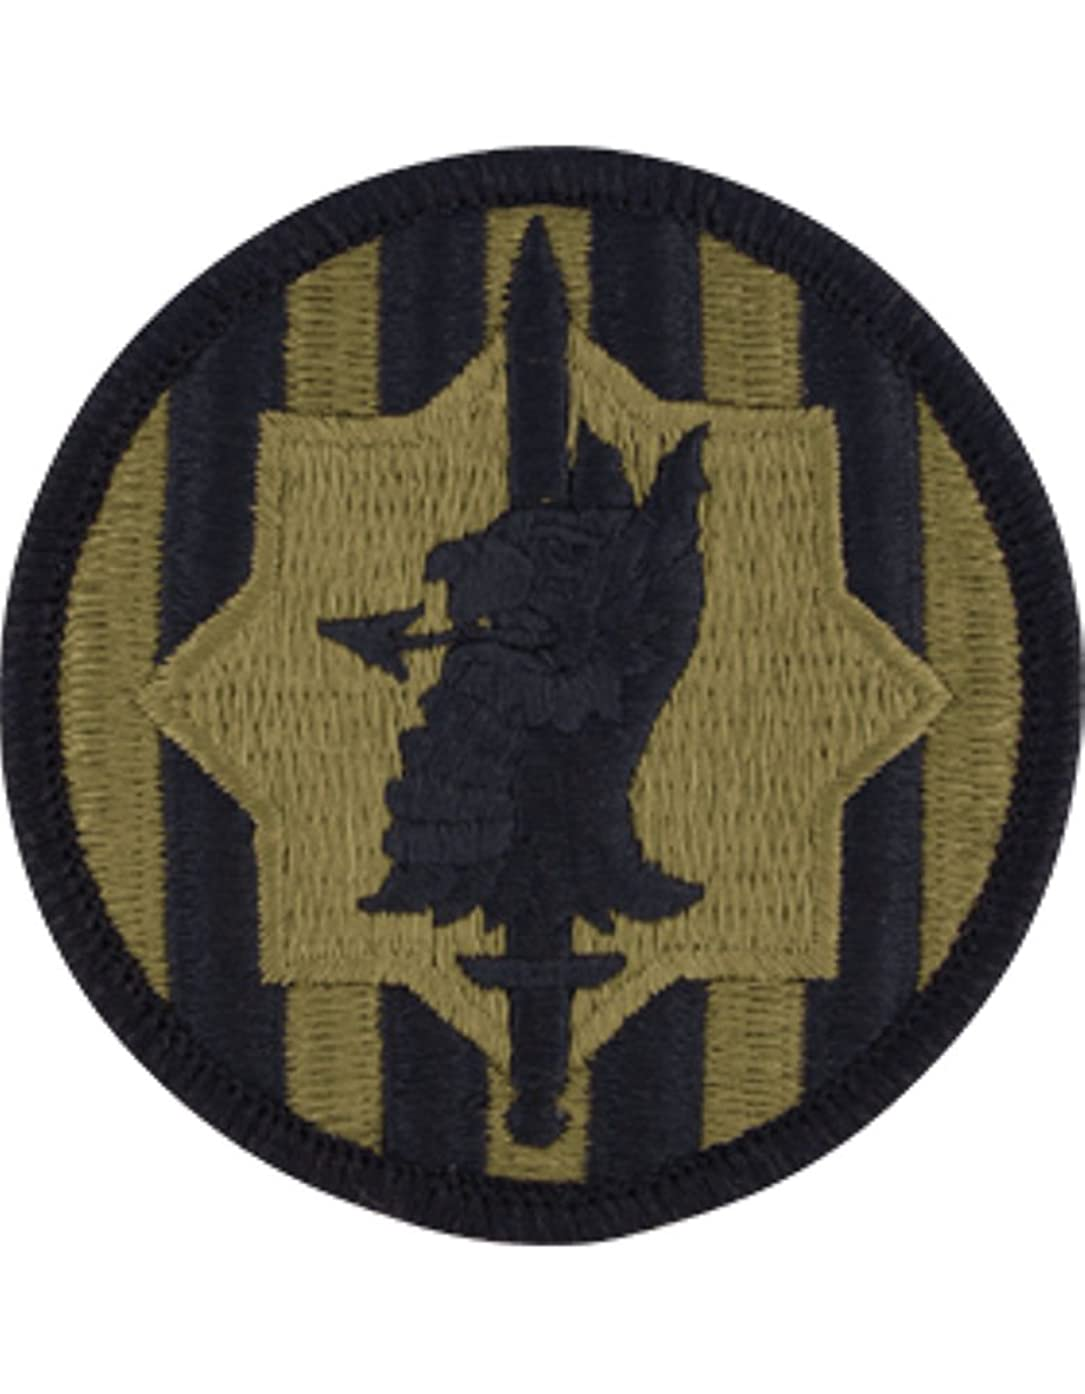 89th MP Brigade (Military Police) MultiCam ? OCP Patch